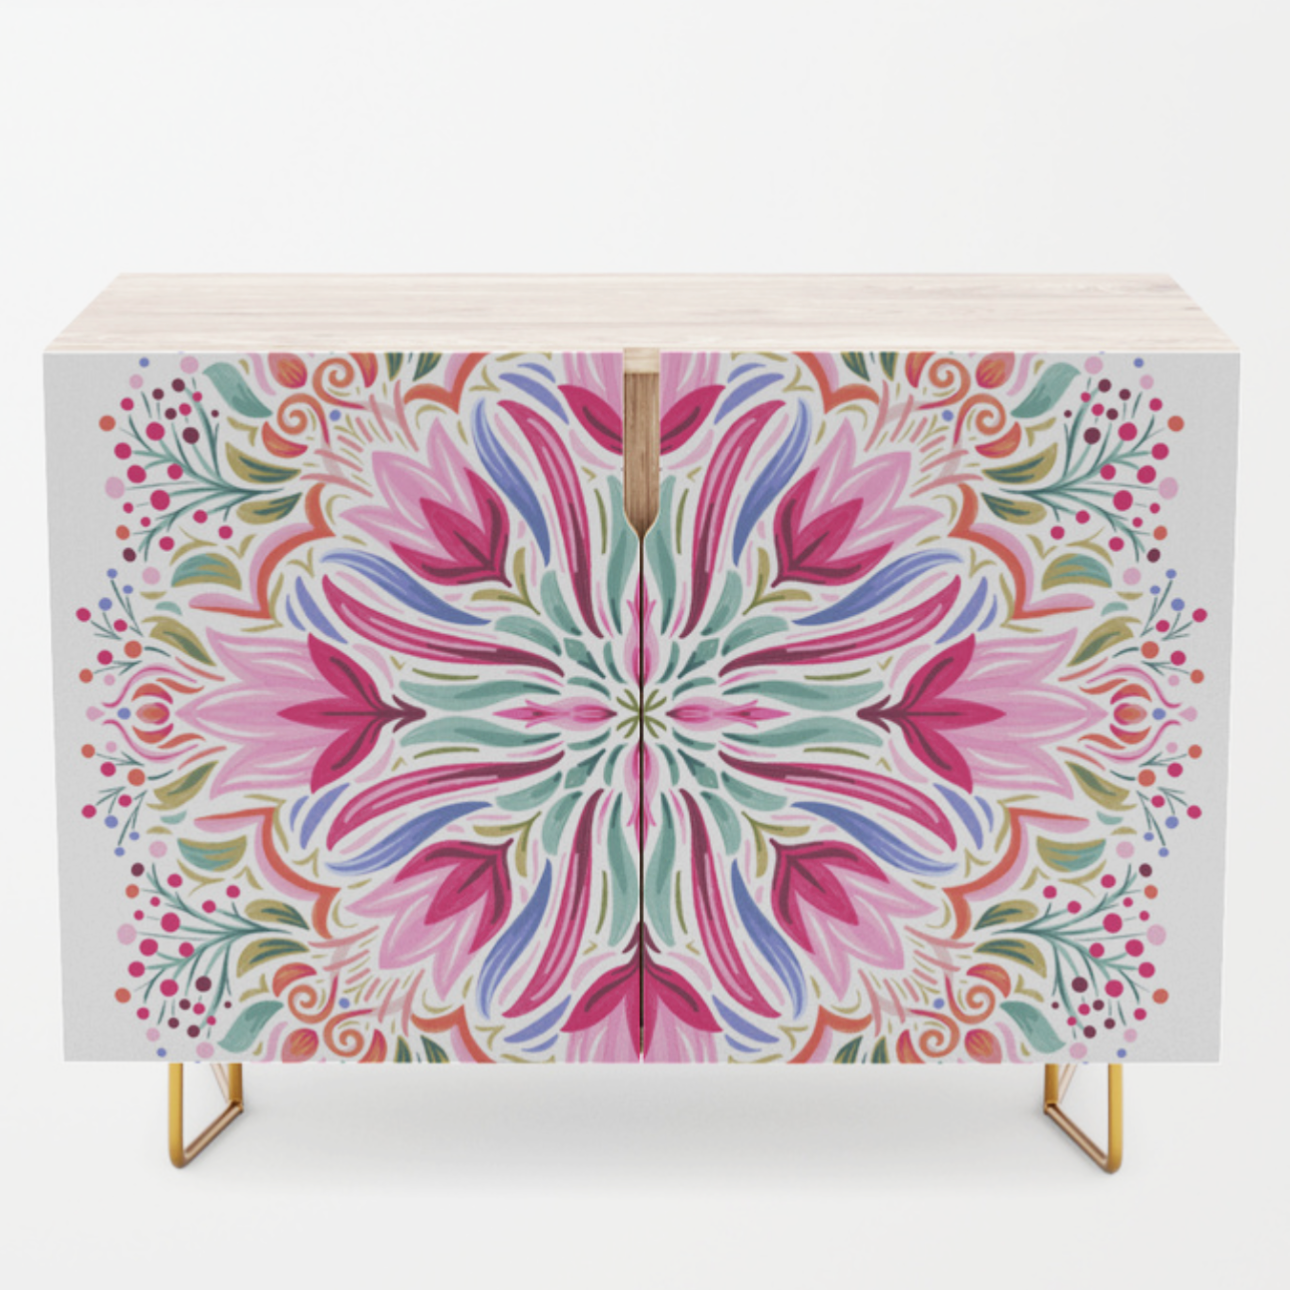 Society6 Furniture - and so much more!